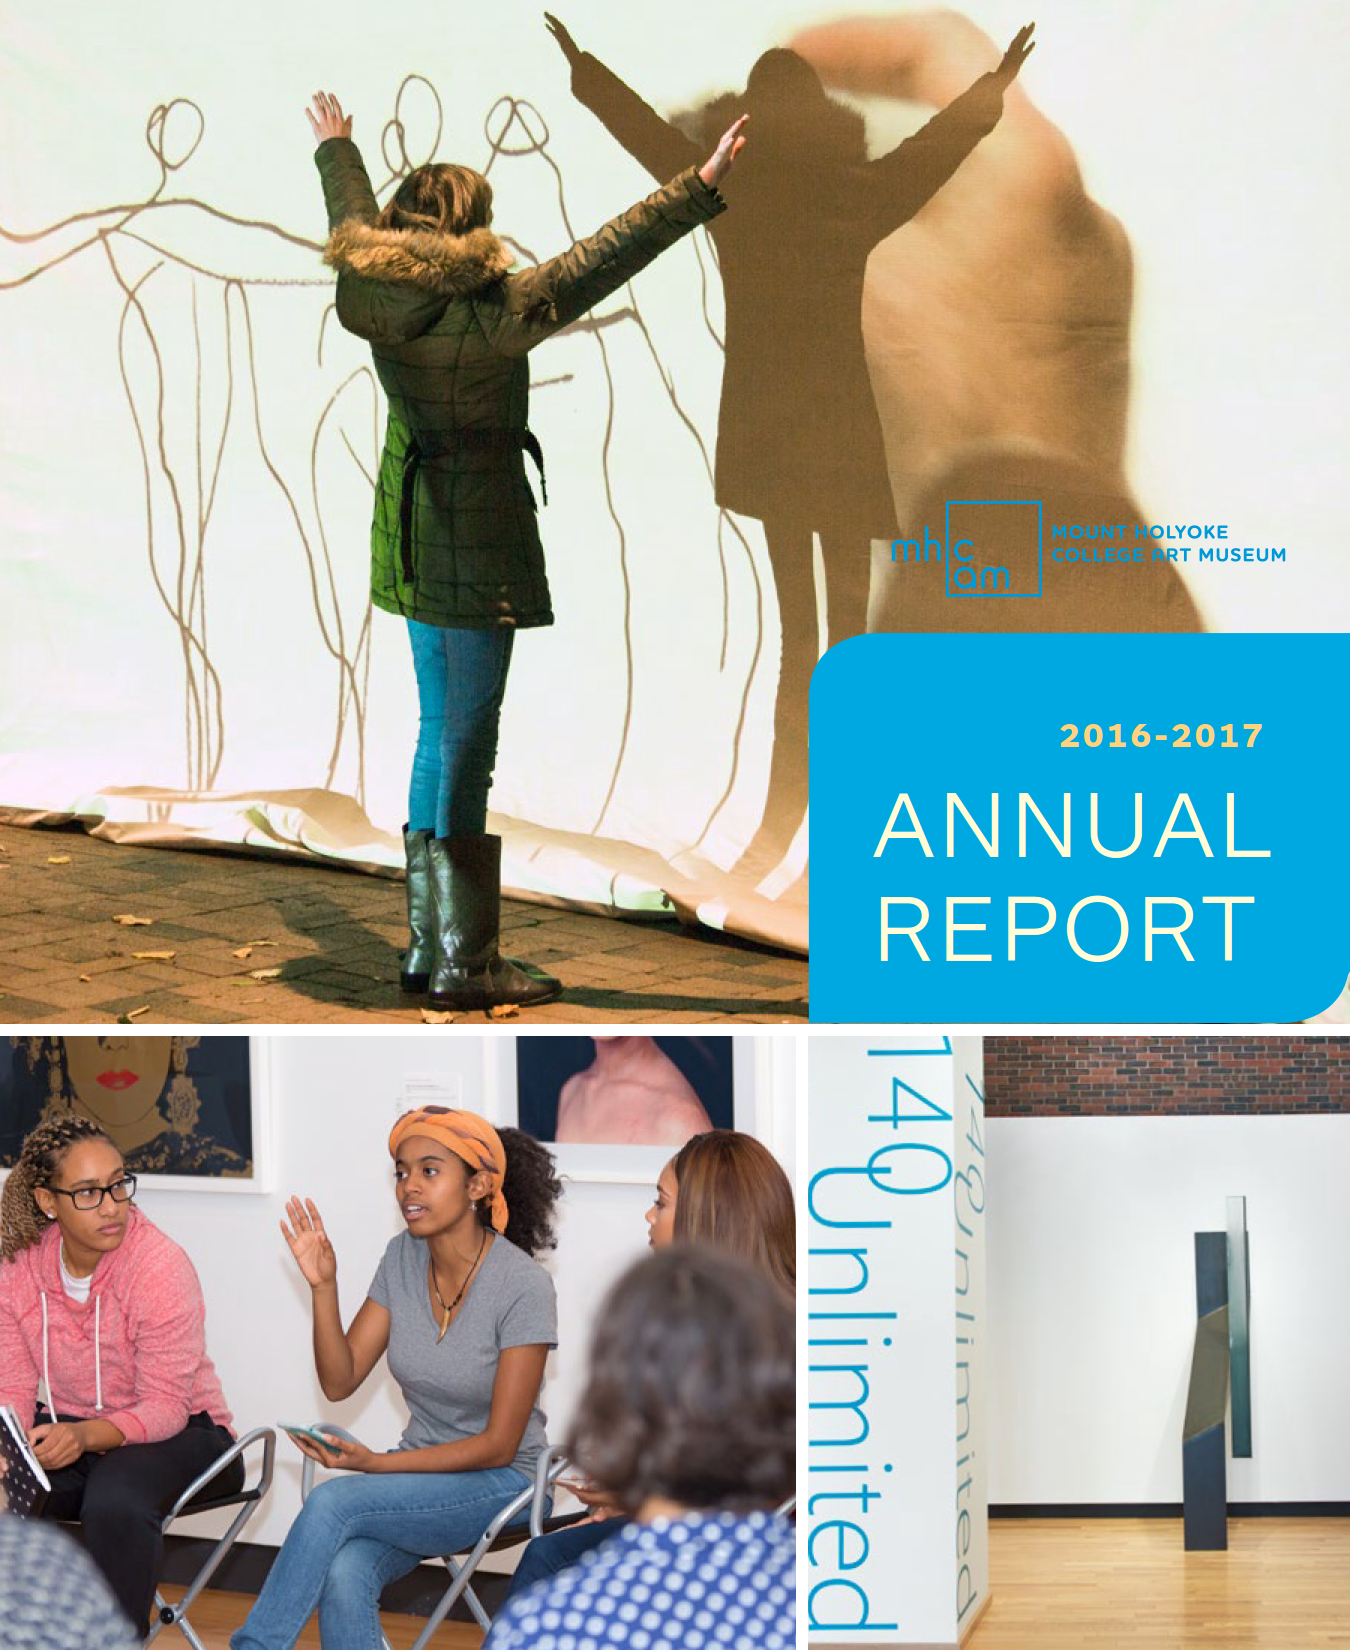 Cover of the 2016-2017 Annual Report